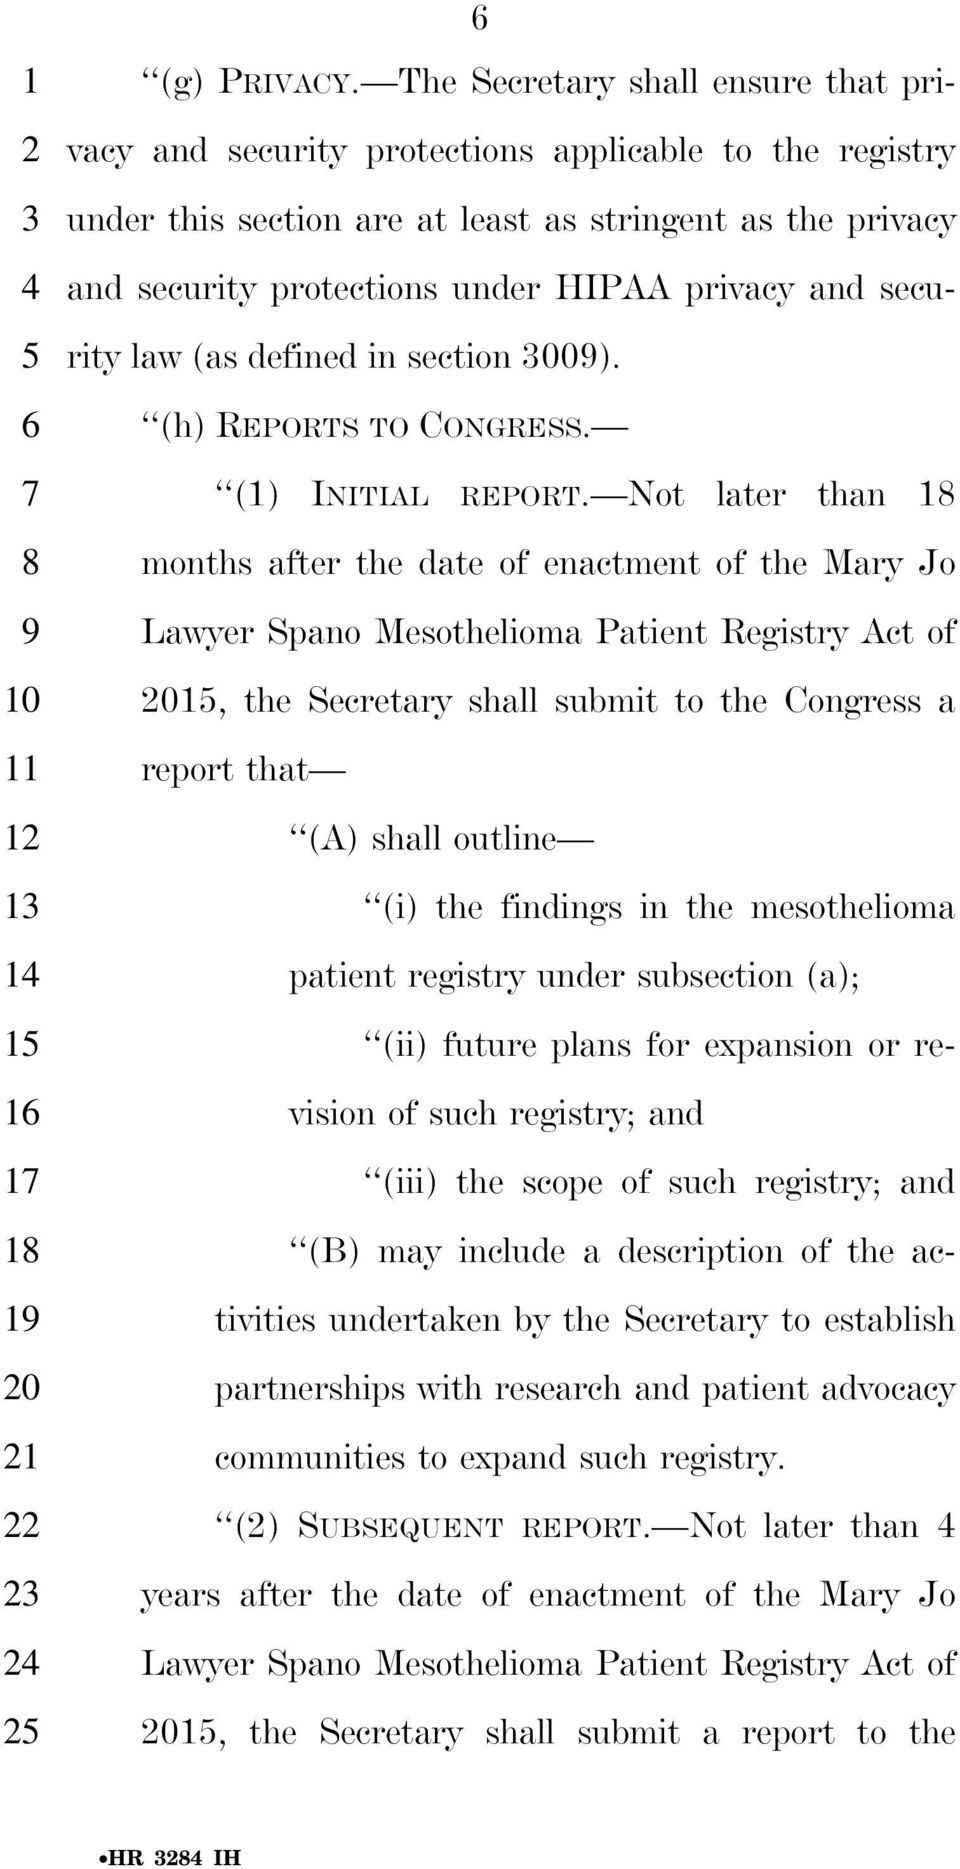 and secu- rity law (as defined in section 009). 9 10 11 1 1 1 1 19 0 1 (h) REPORTS TO CONGRESS. (1) INITIAL REPORT.